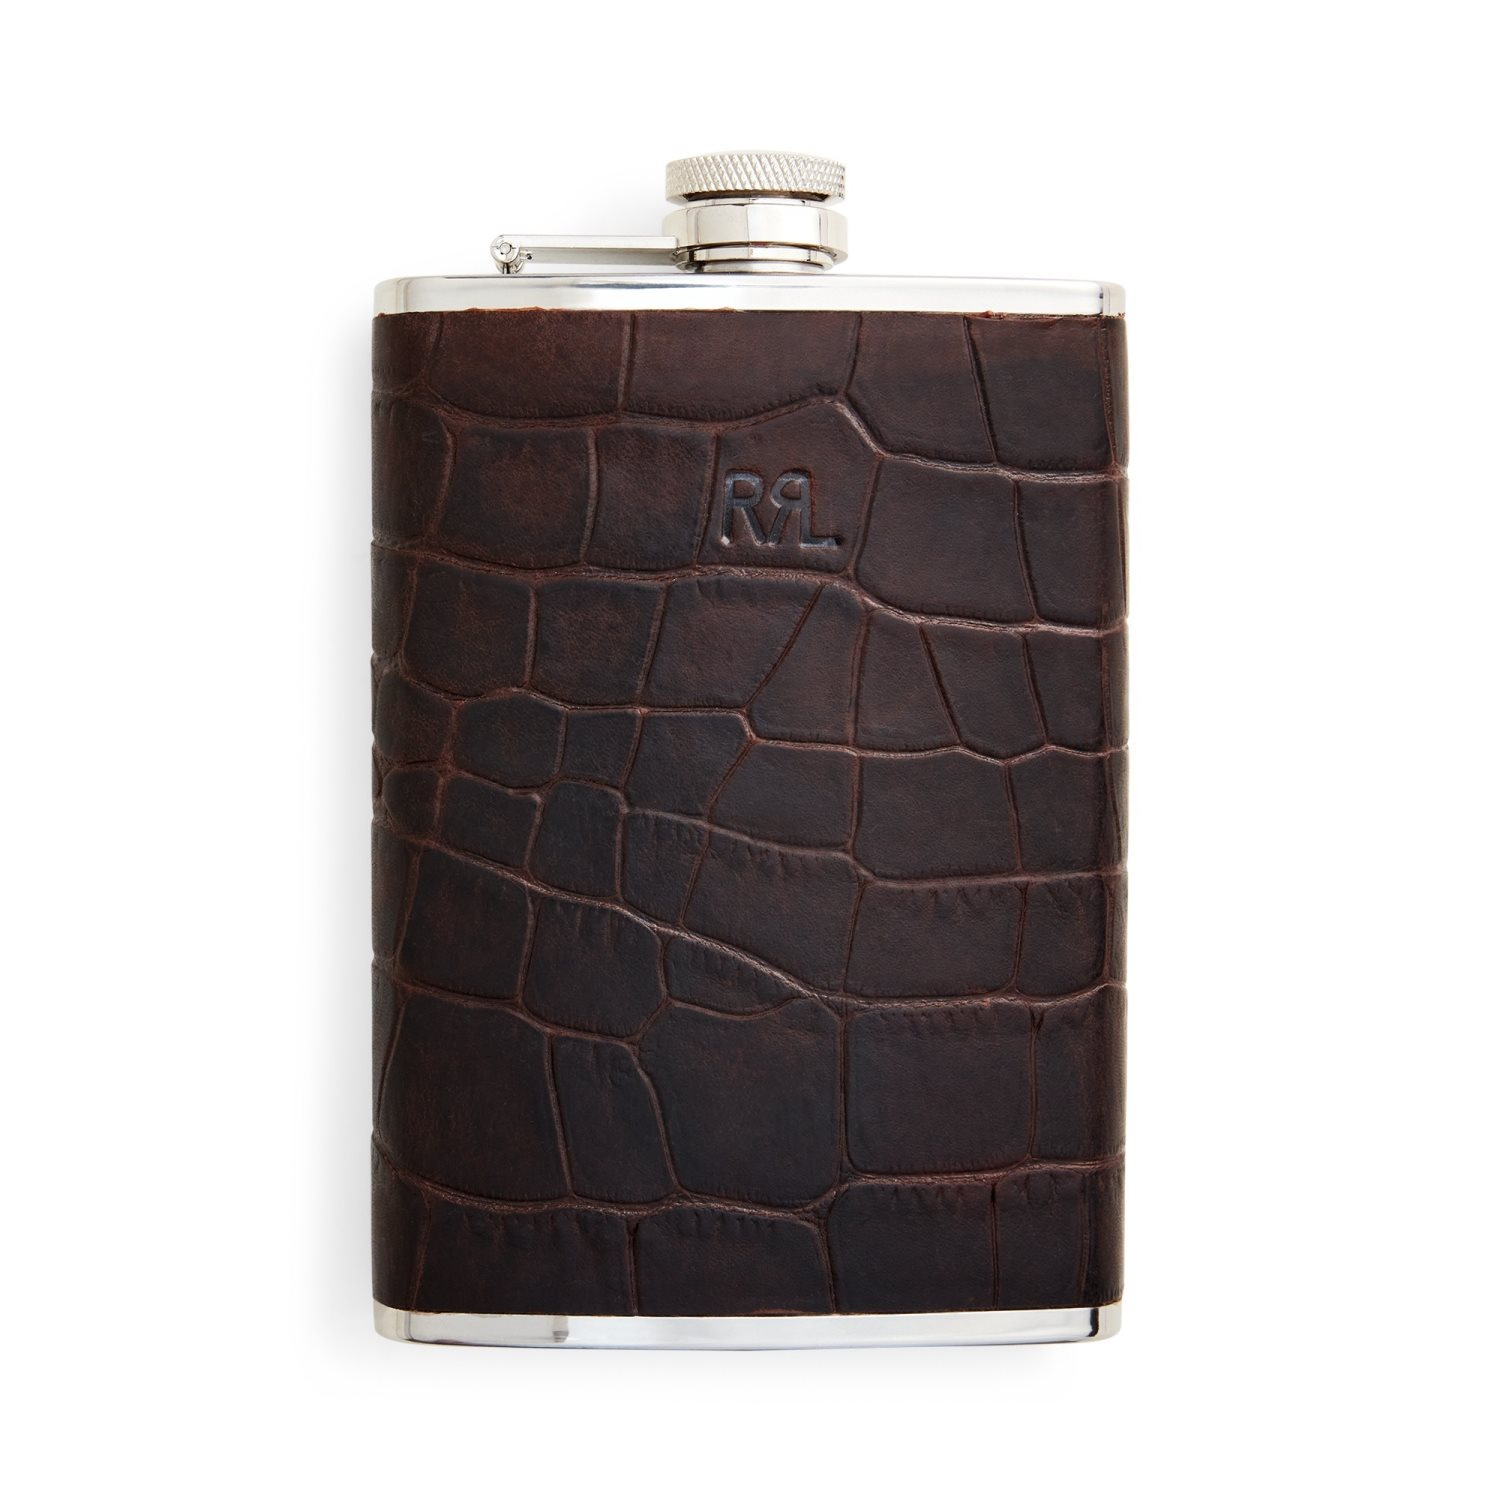 Foto van Ralph Lauren RRL Flask-Travel-Embossed Leather